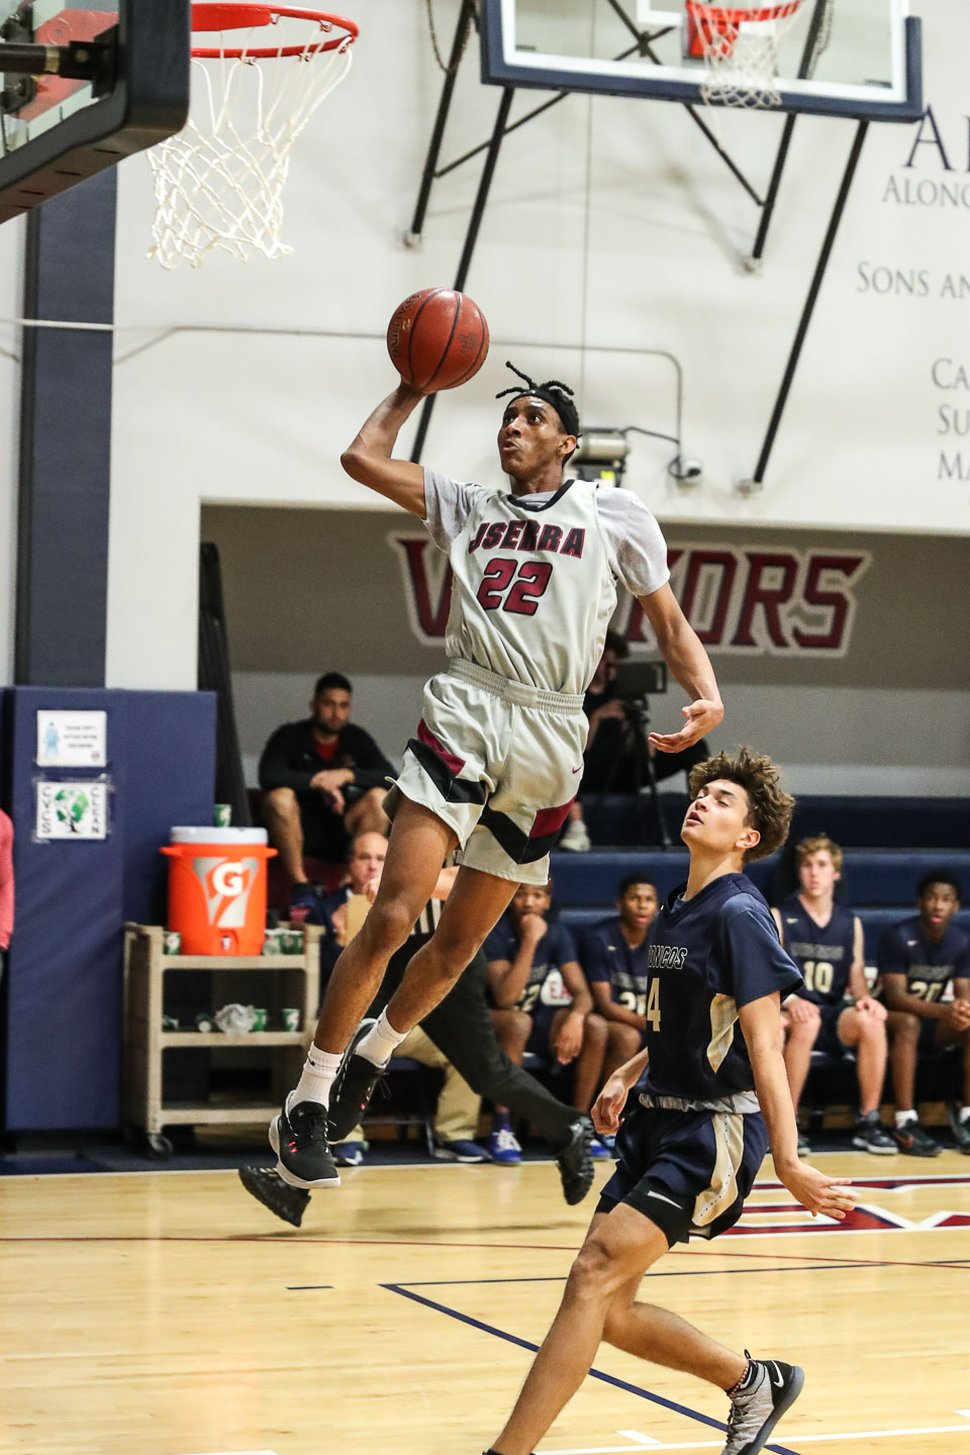 (Photo courtesy of William Palmer) JSerra Catholic High School forward Ian Martinez plays in a game in Santa Ana, Calif. The senior has committed to play at the University of Utah.